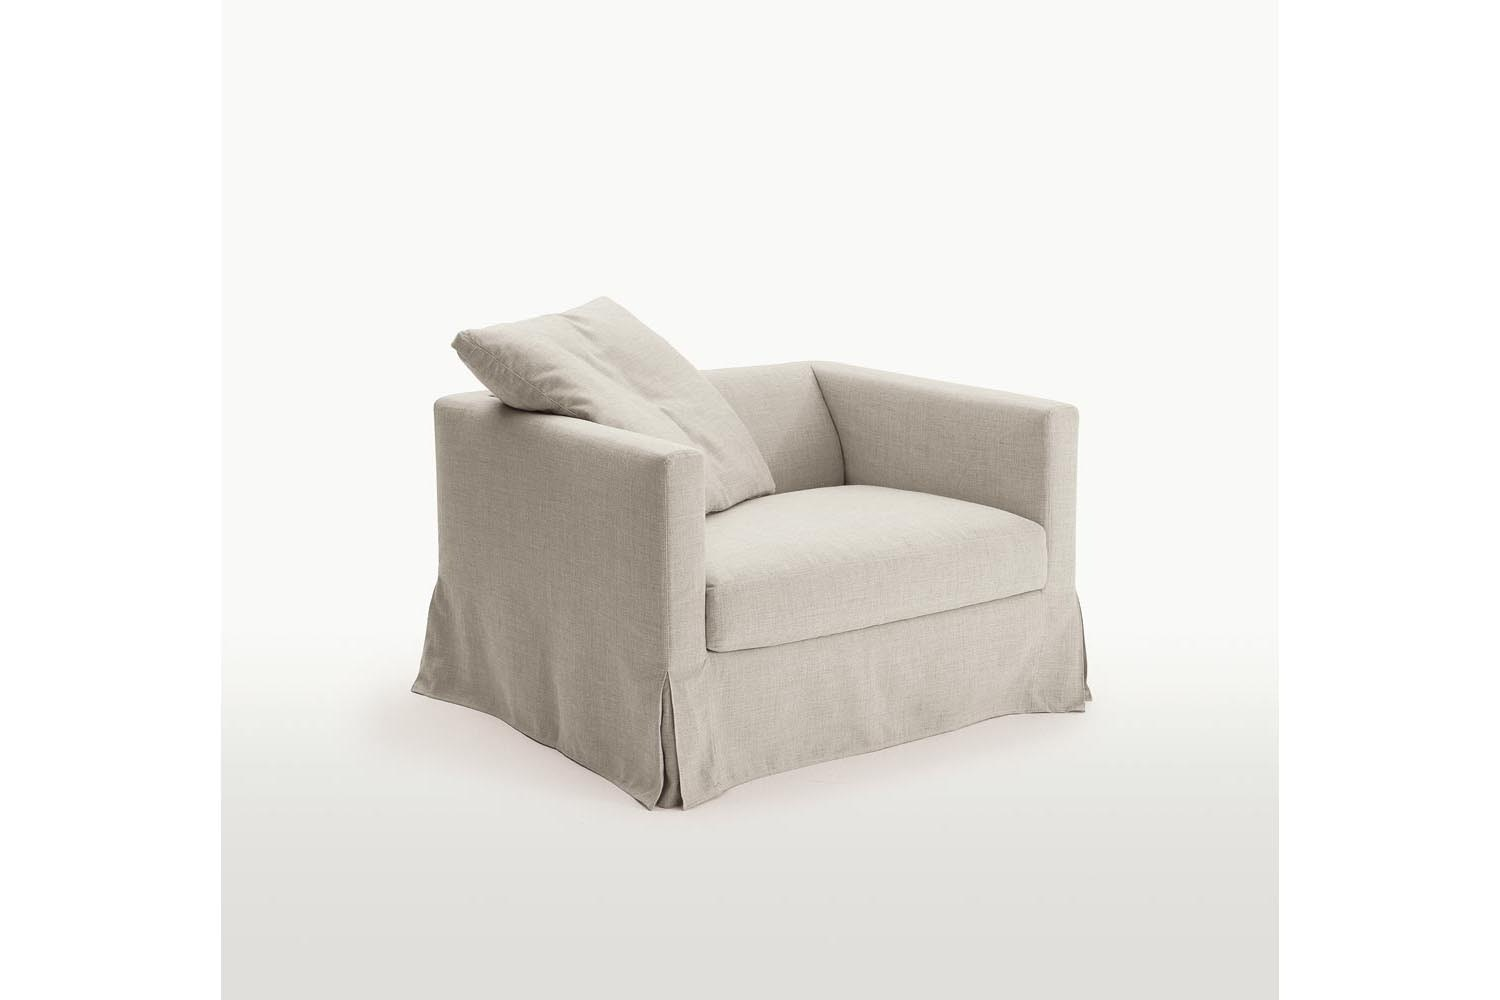 Simpliciter Armchair with Slip Cover by Antonio Citterio for Maxalto